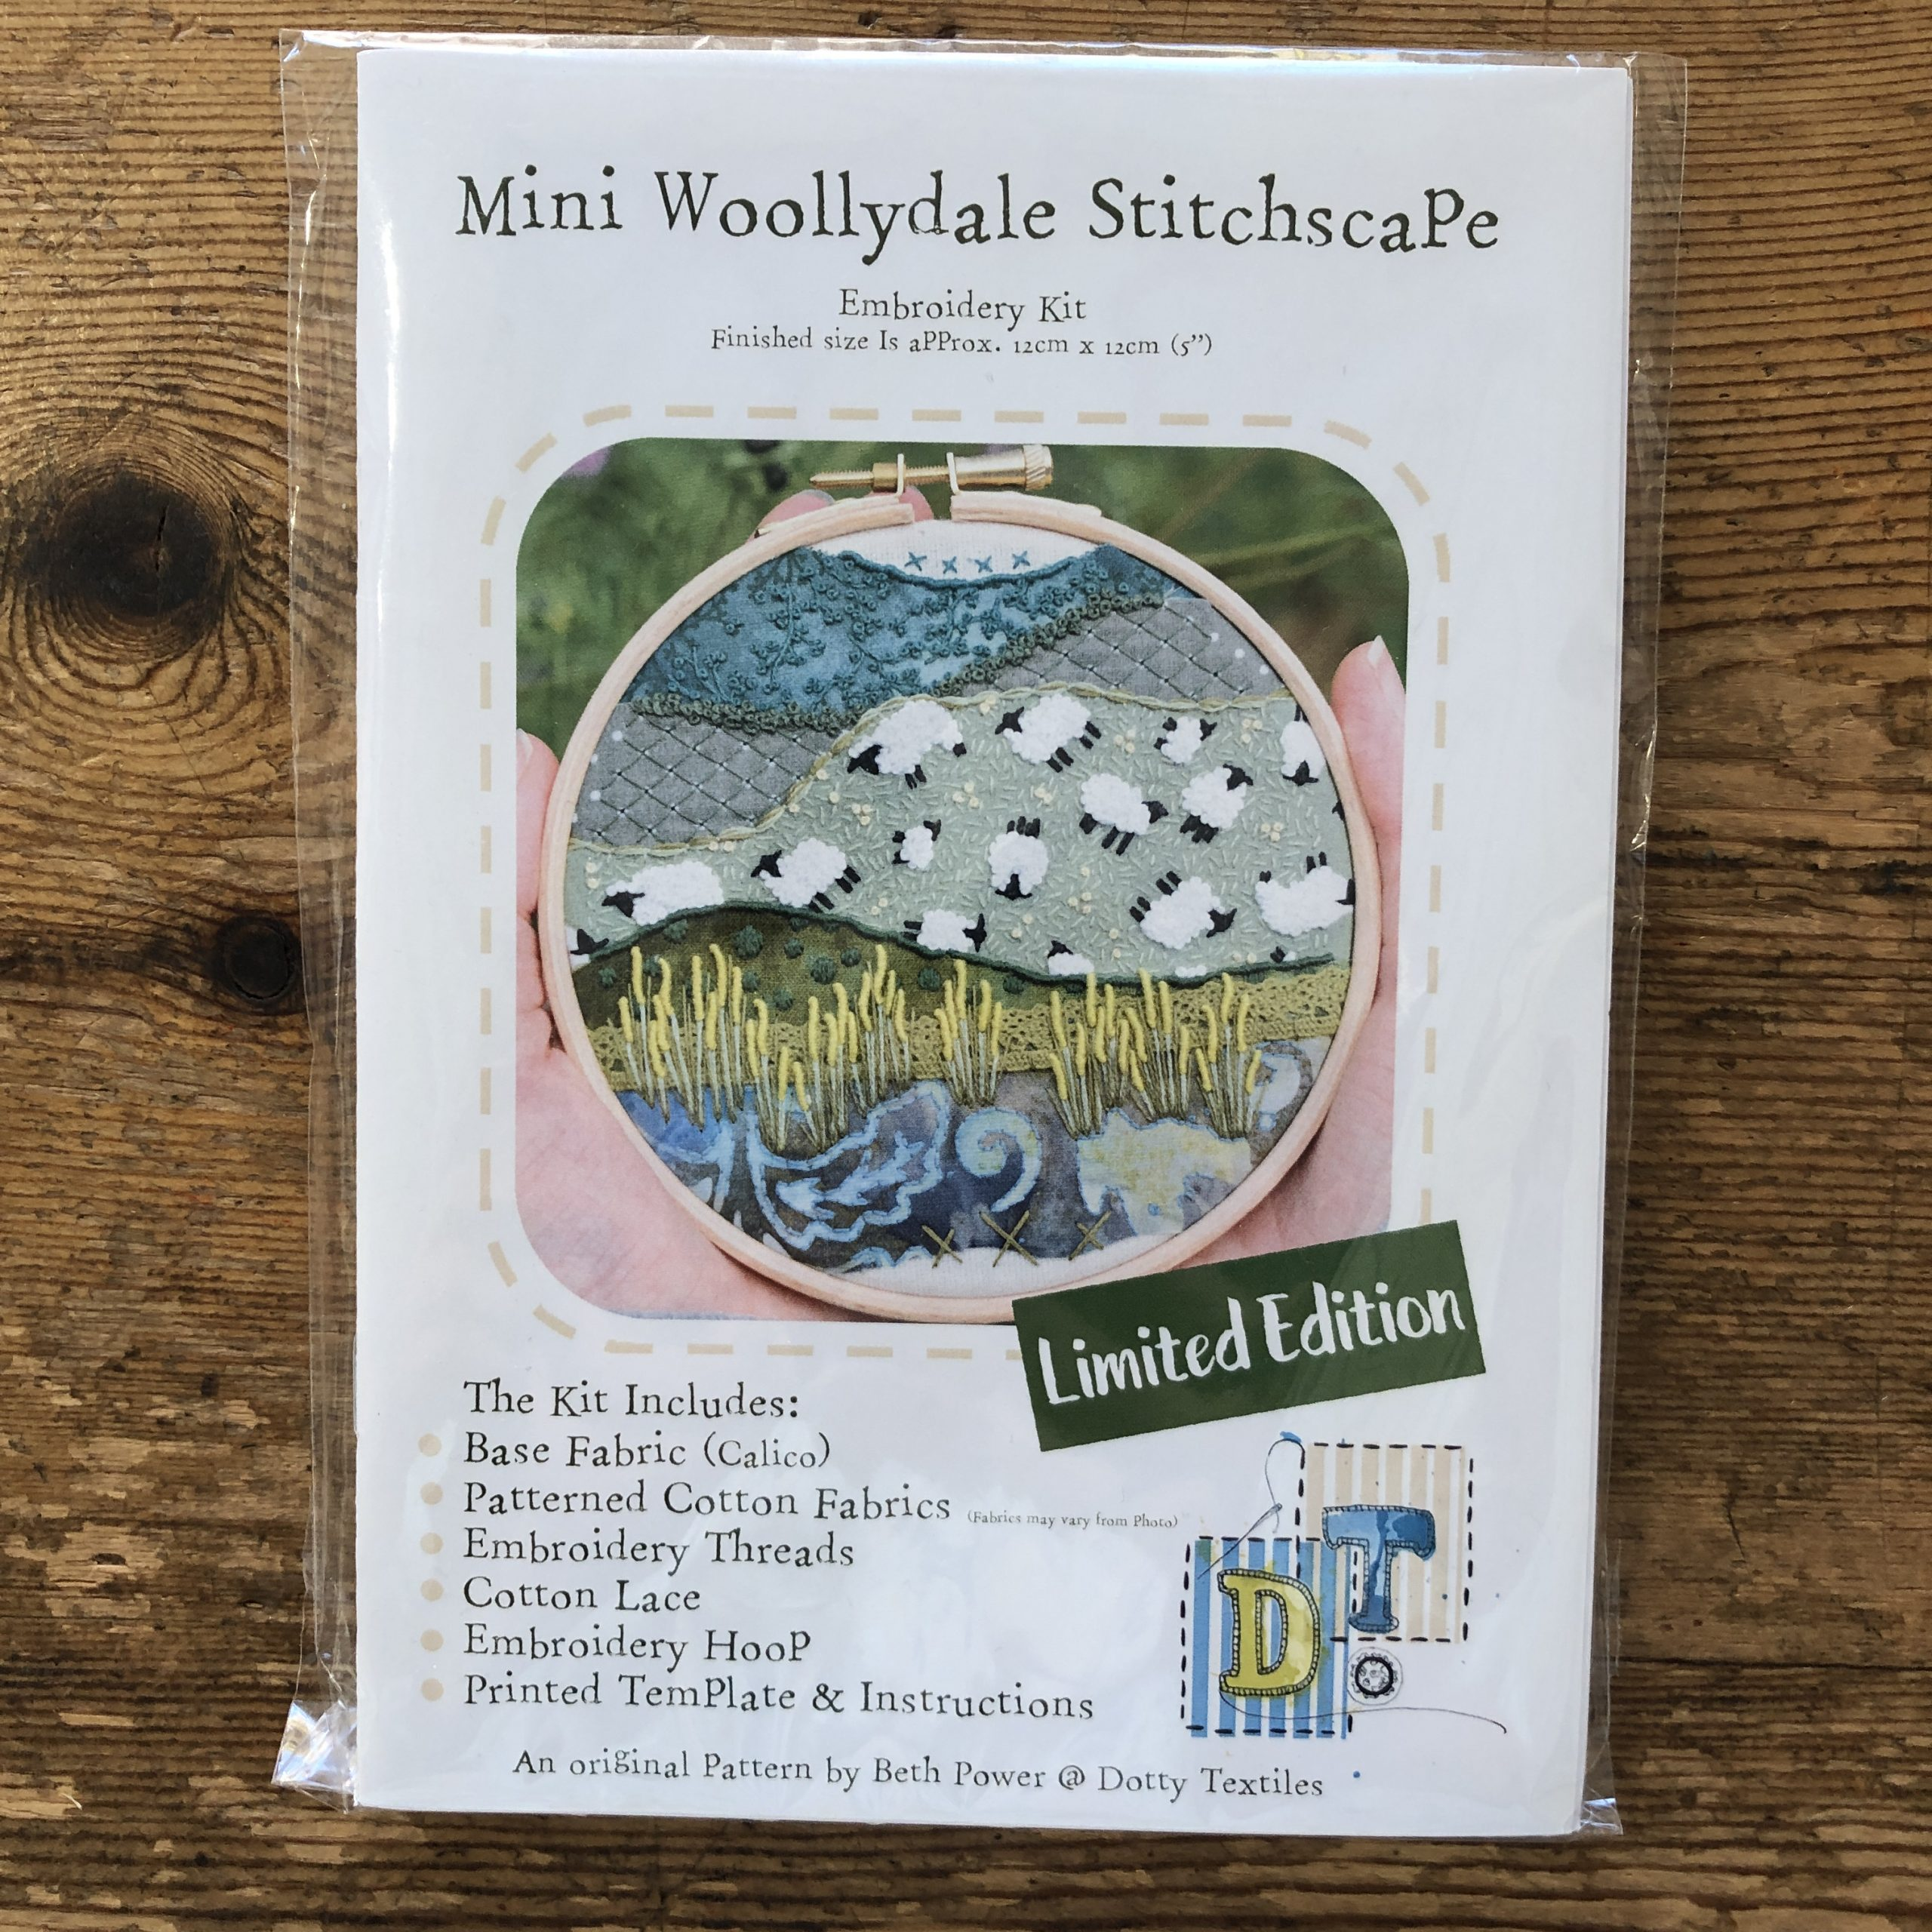 Stitchscape Mini Woollydale Embroidery Kit